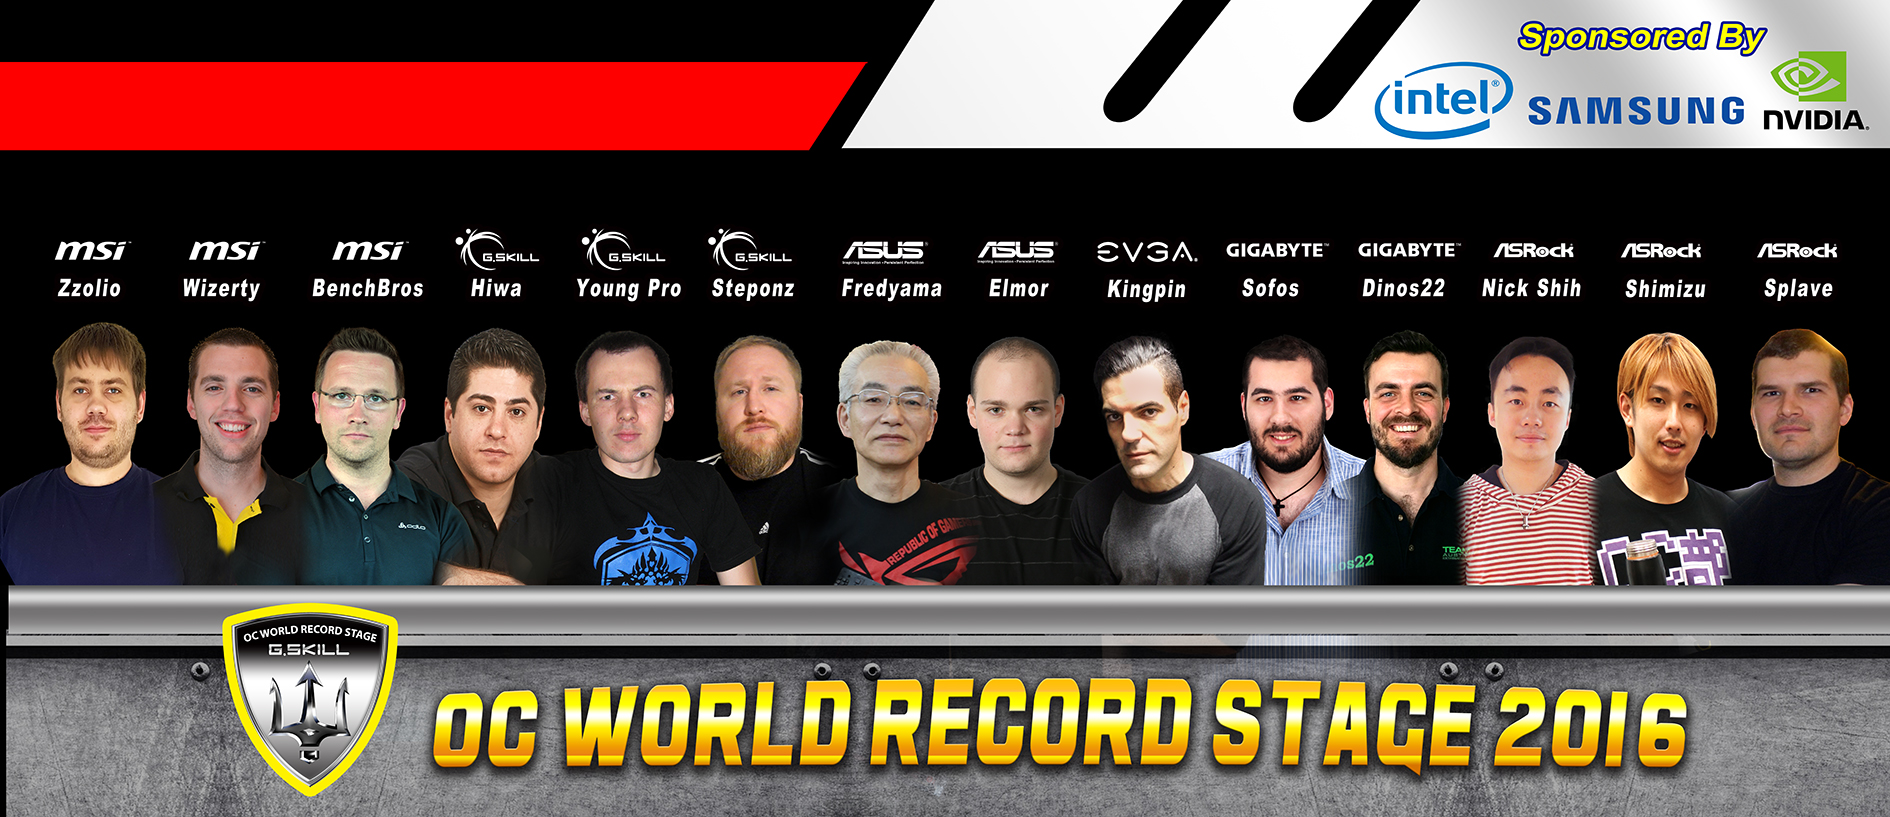 G.SKILL ospiterà l'OC World Record Stage e l'OC World Cup al Computex 2016